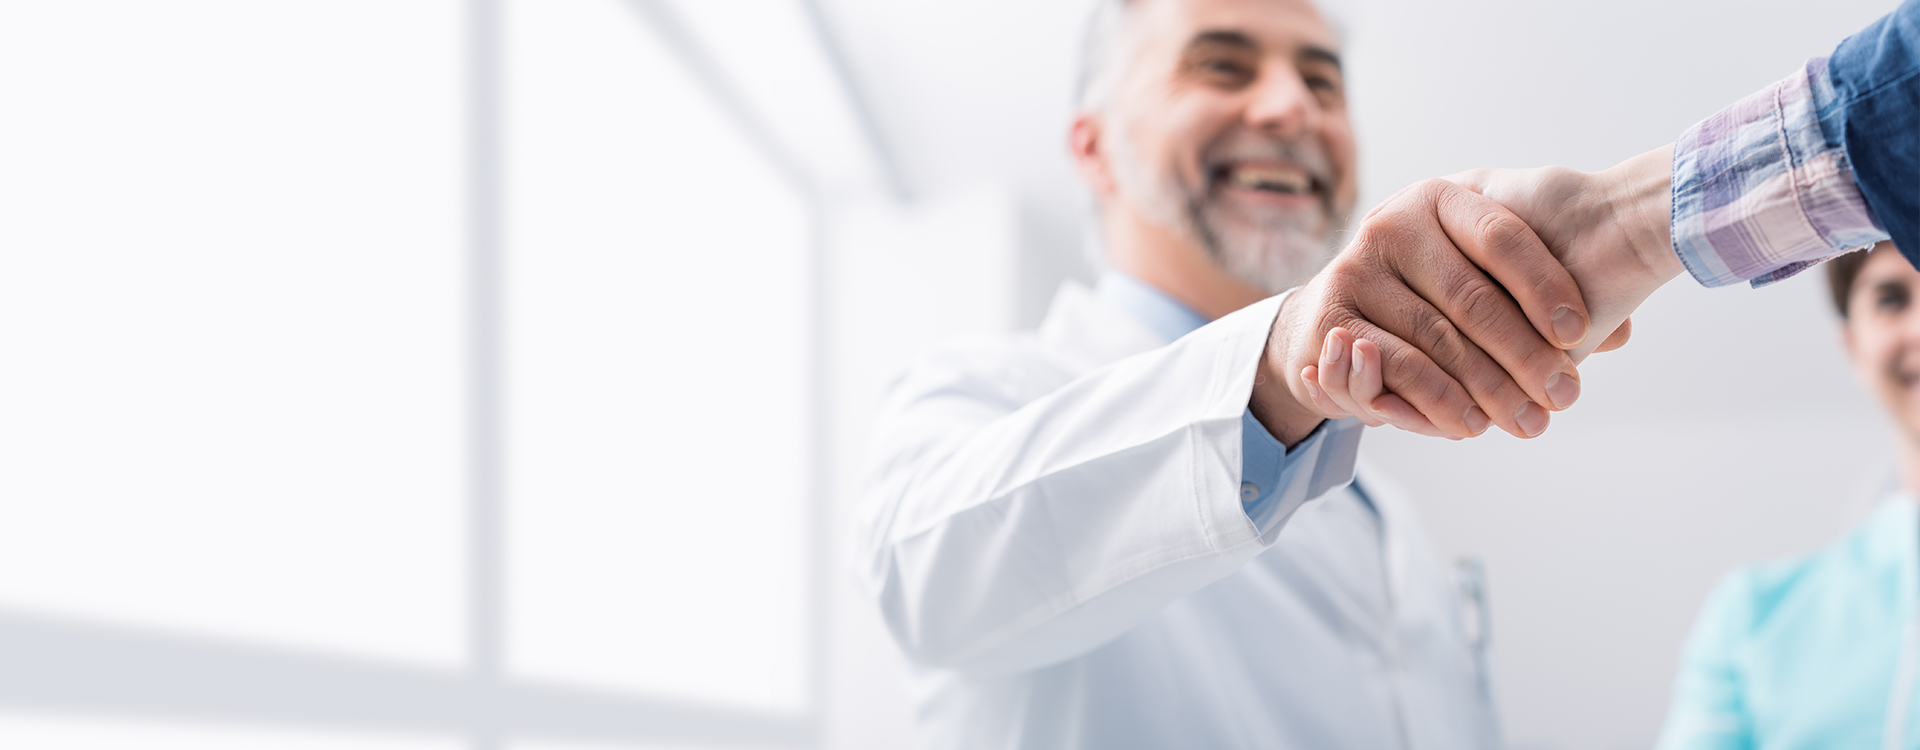 Older male in white lab coat shaking hands with a businessman